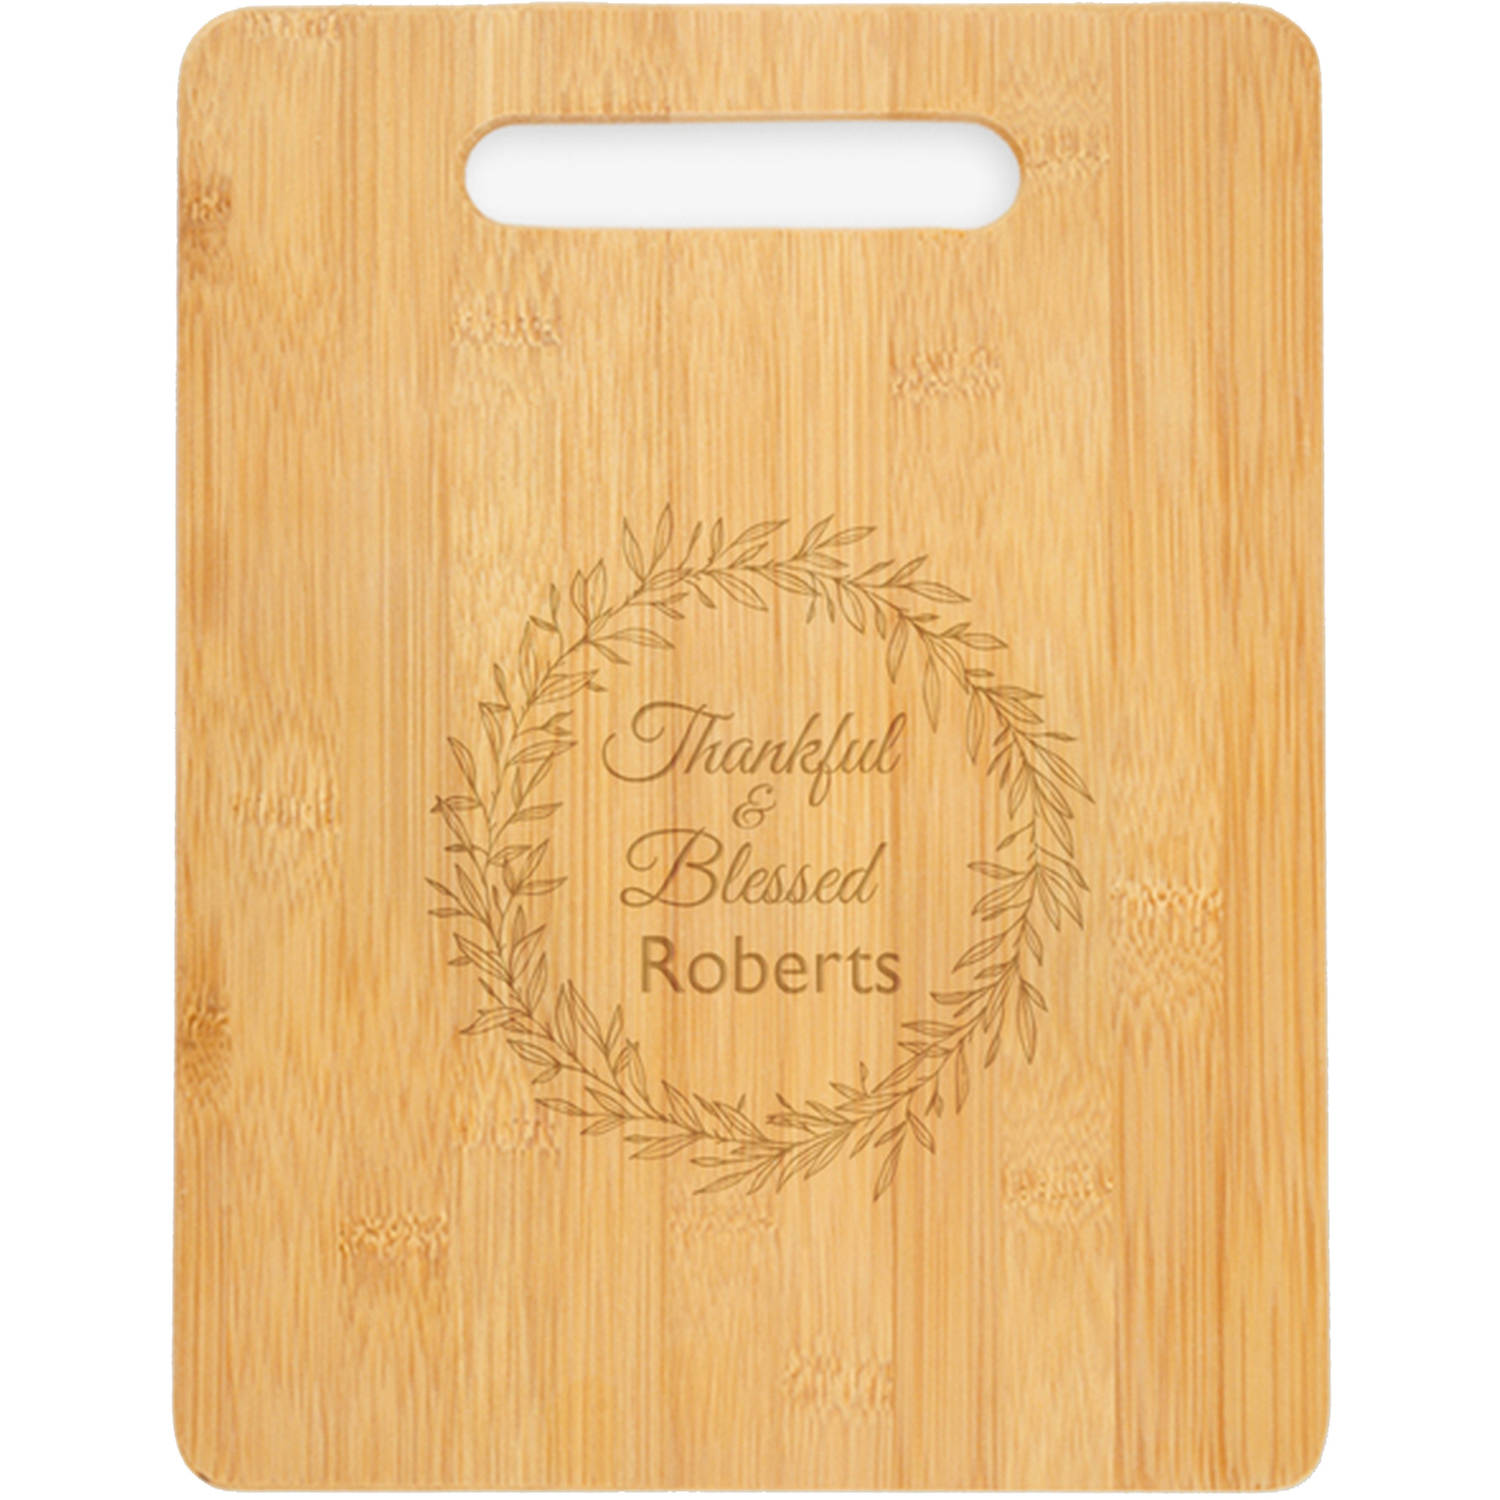 "Personalized Thankful And Blessed Cutting Board, Sizes 12.5"" x 11.5"" and 12.5"" x 13.75"""